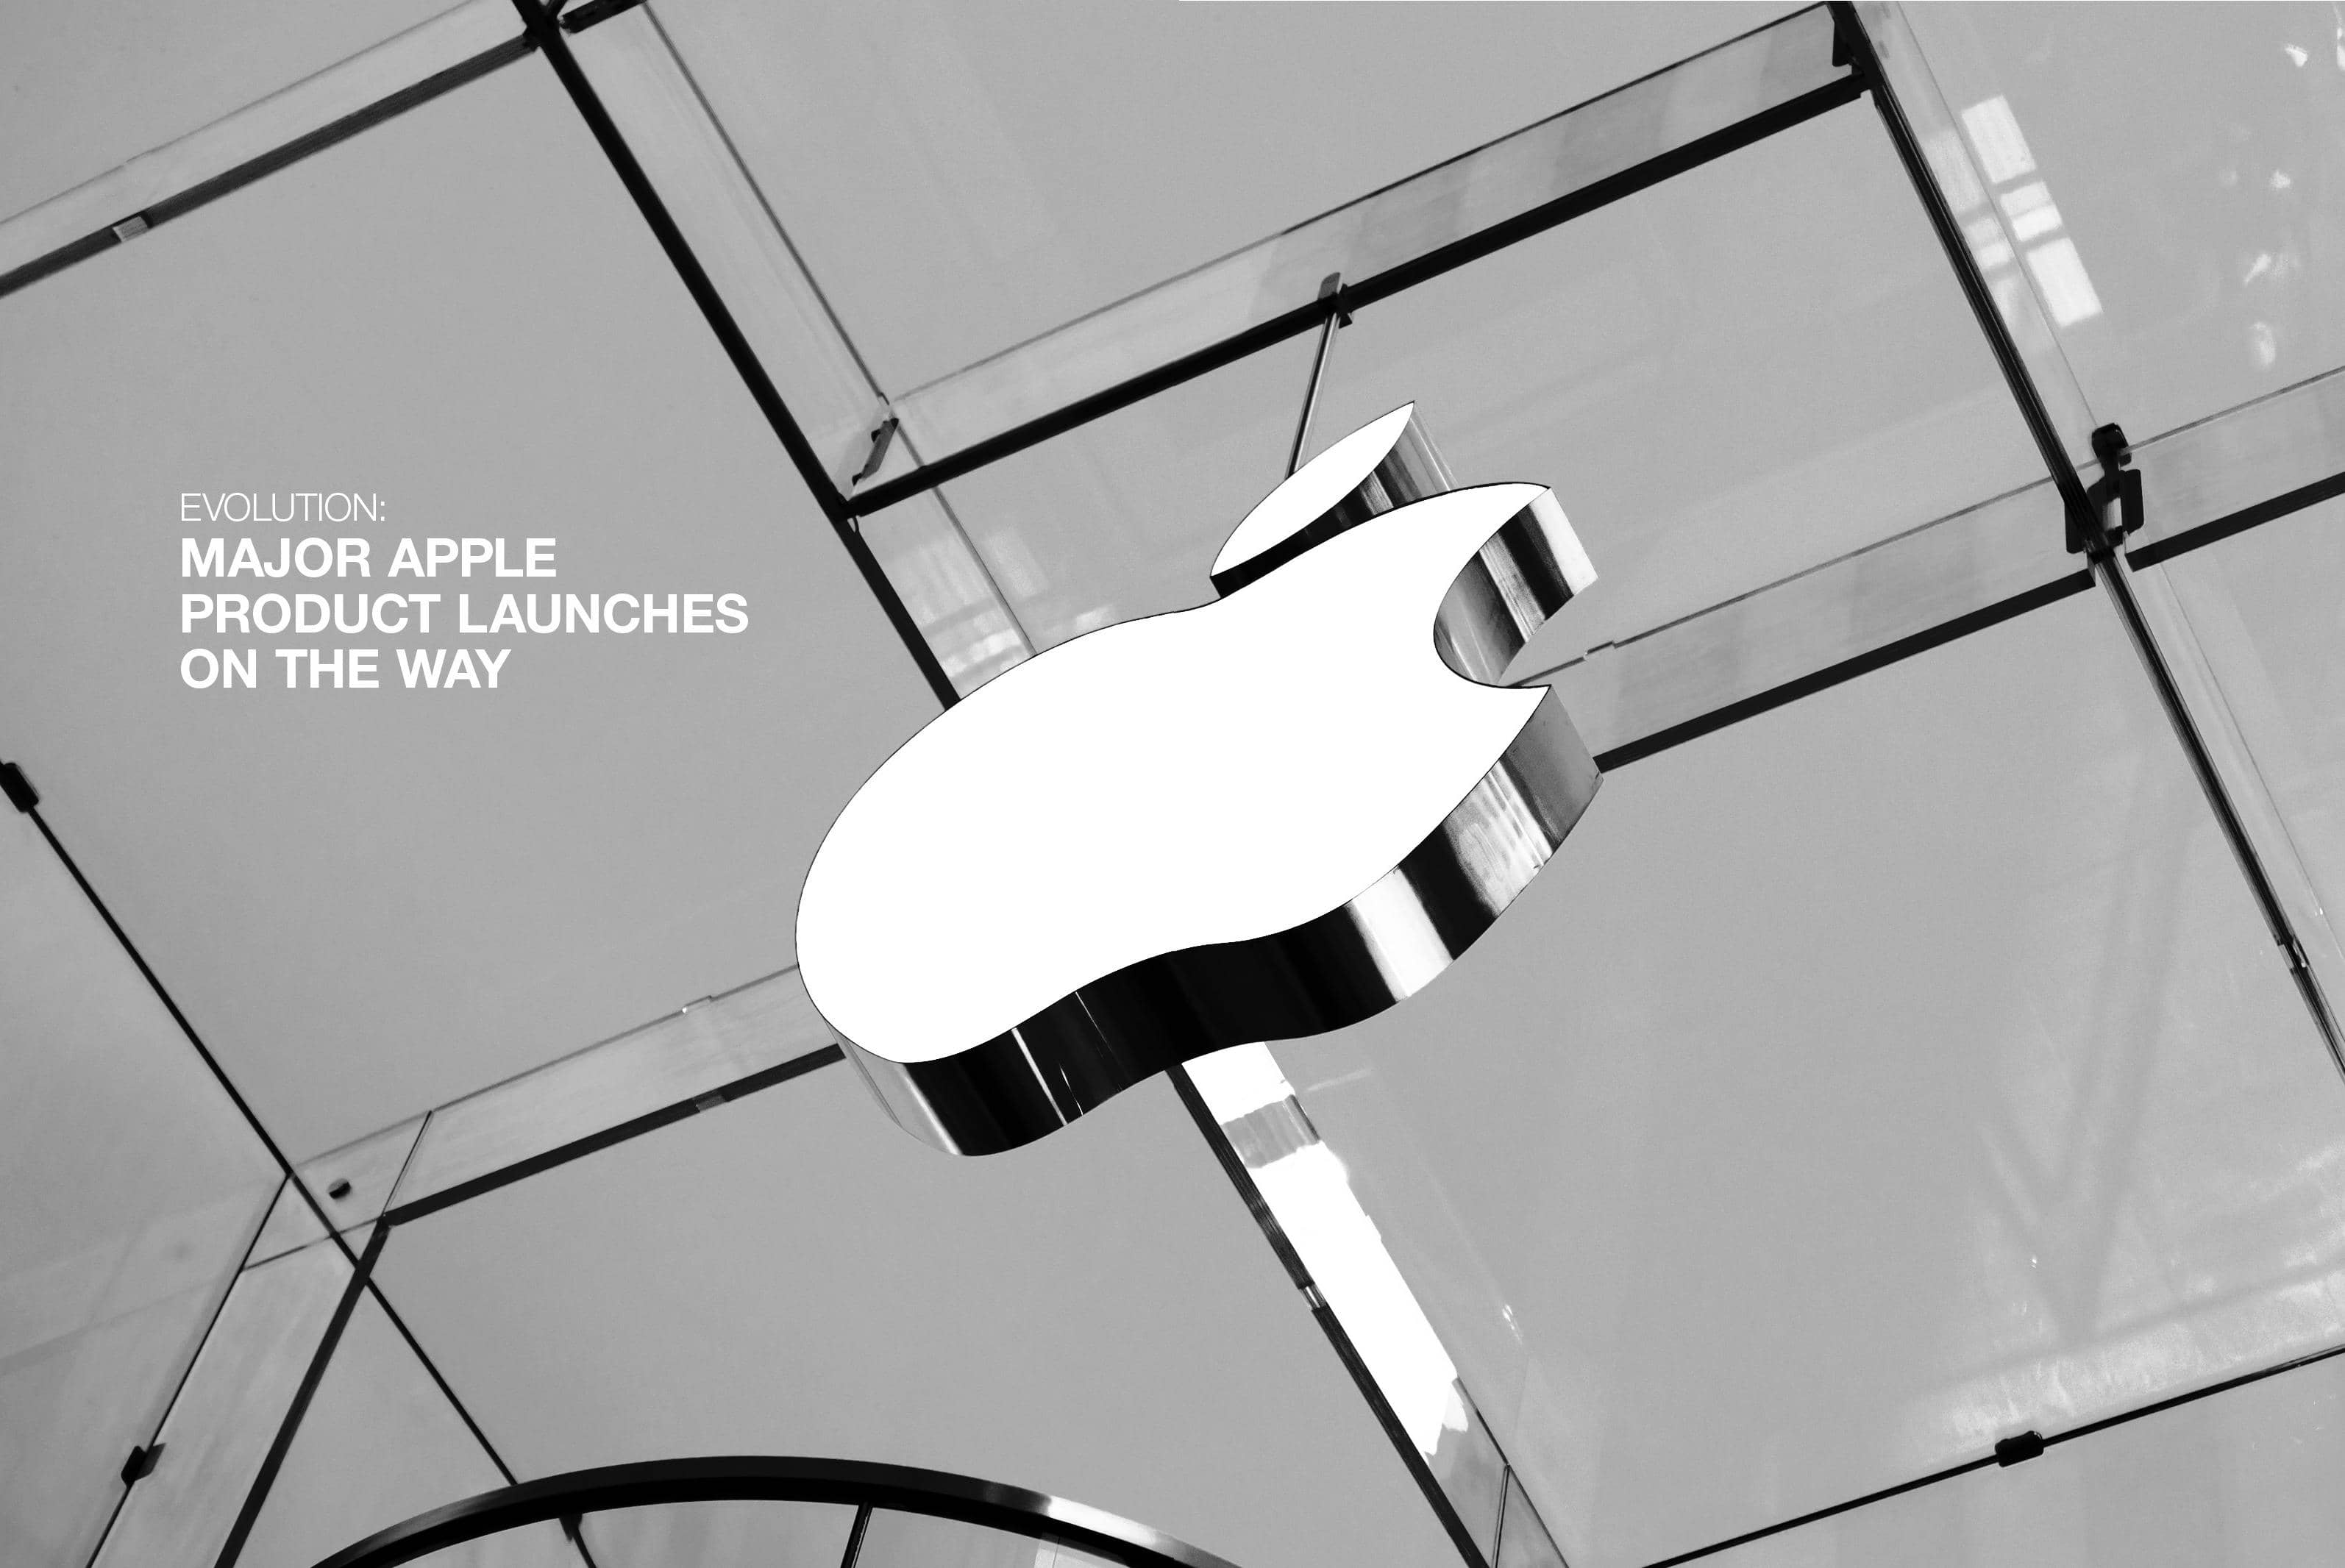 Evolution: Major Apple Product Launches on The Way